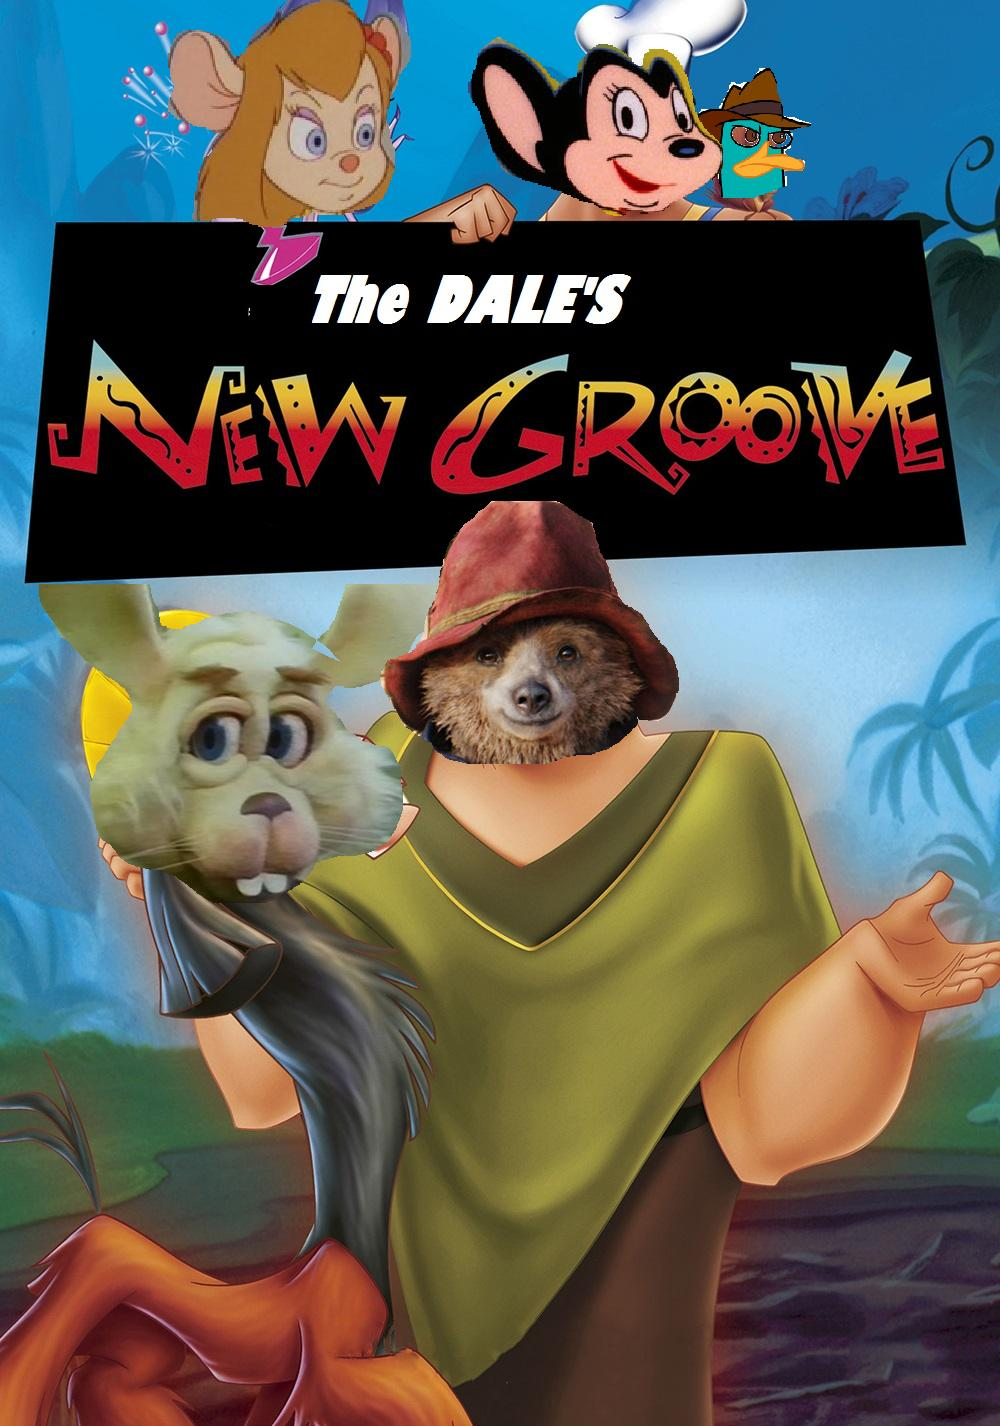 The Dale's New Groove